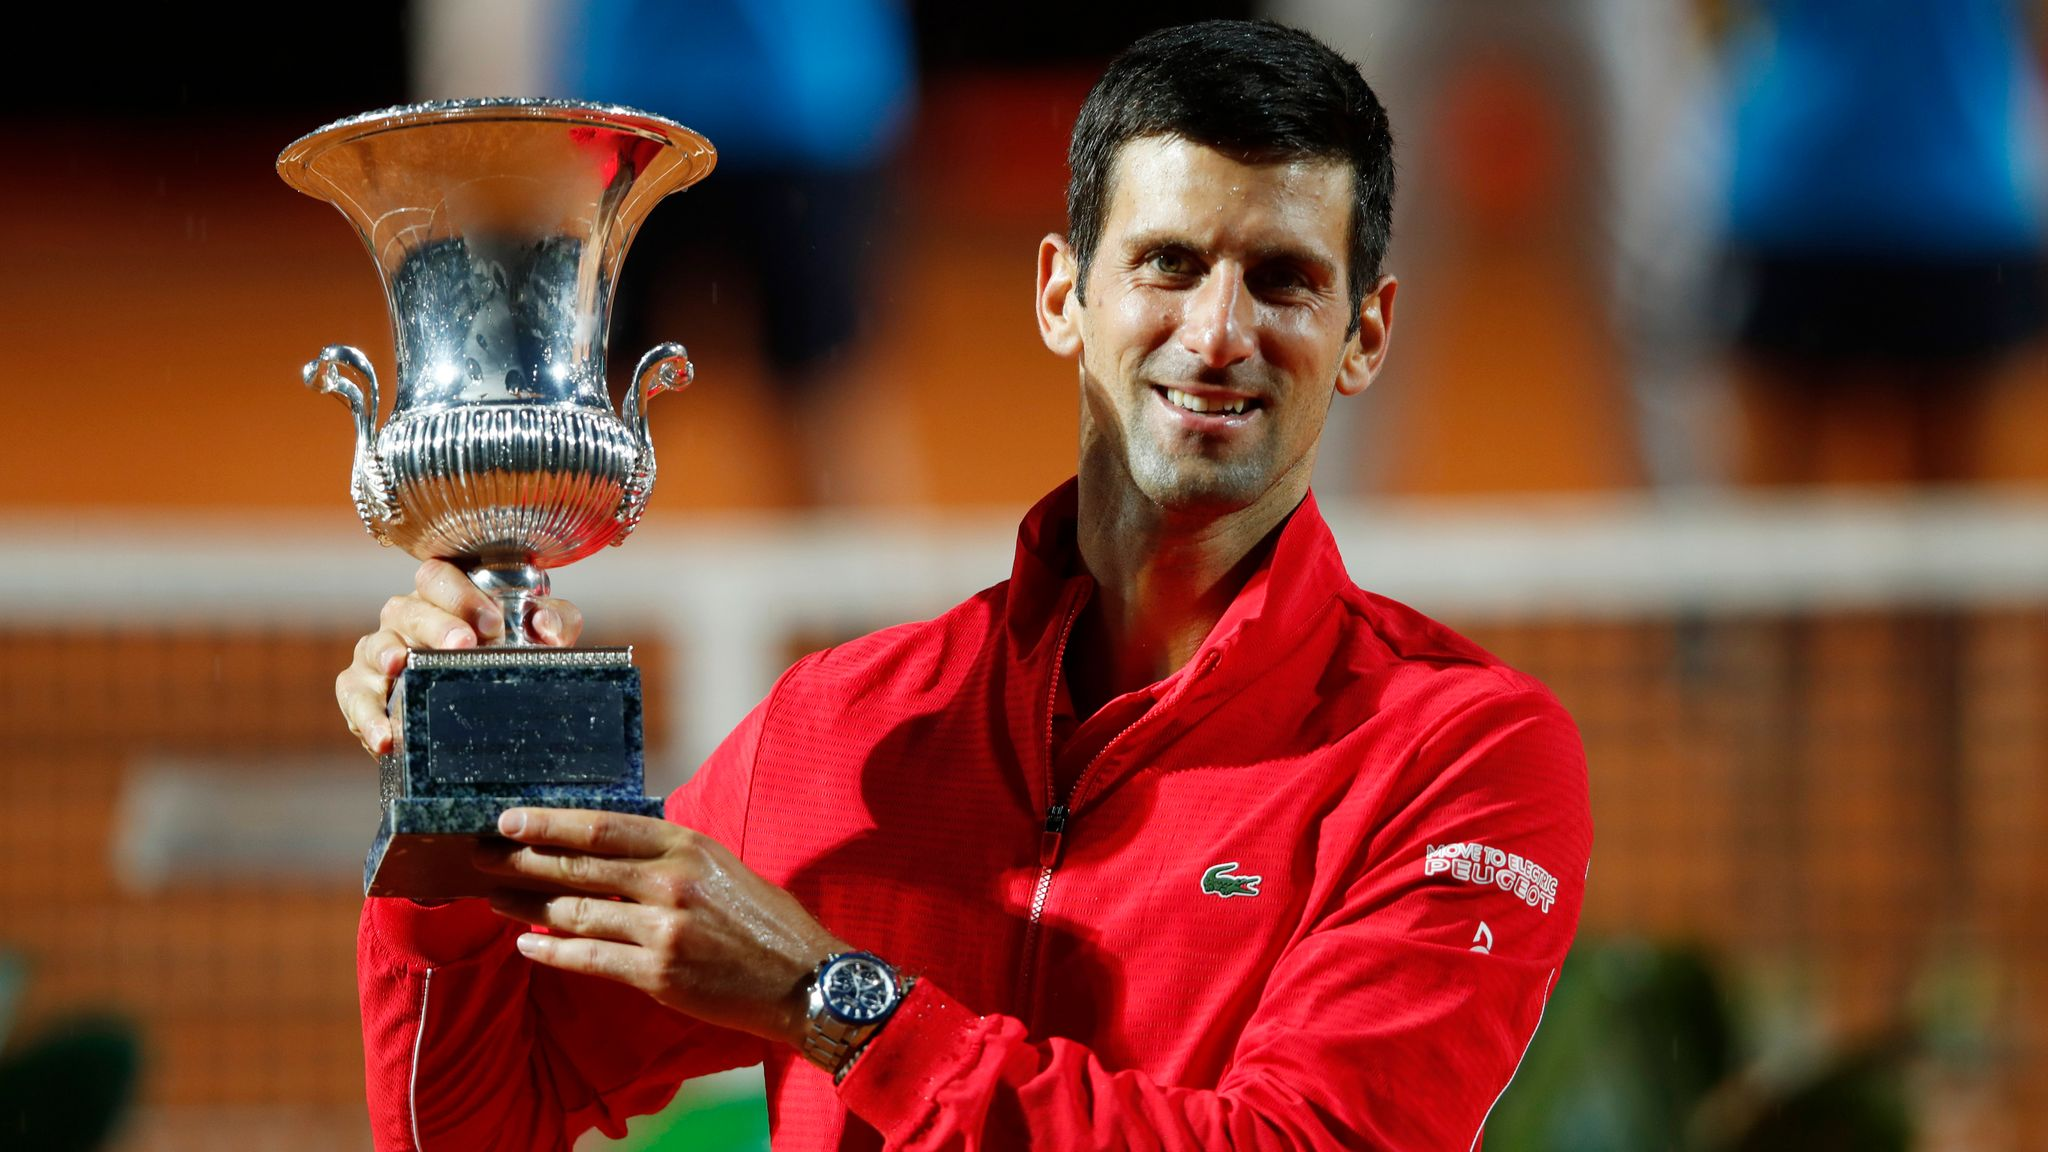 Novak Djokovic wins Men